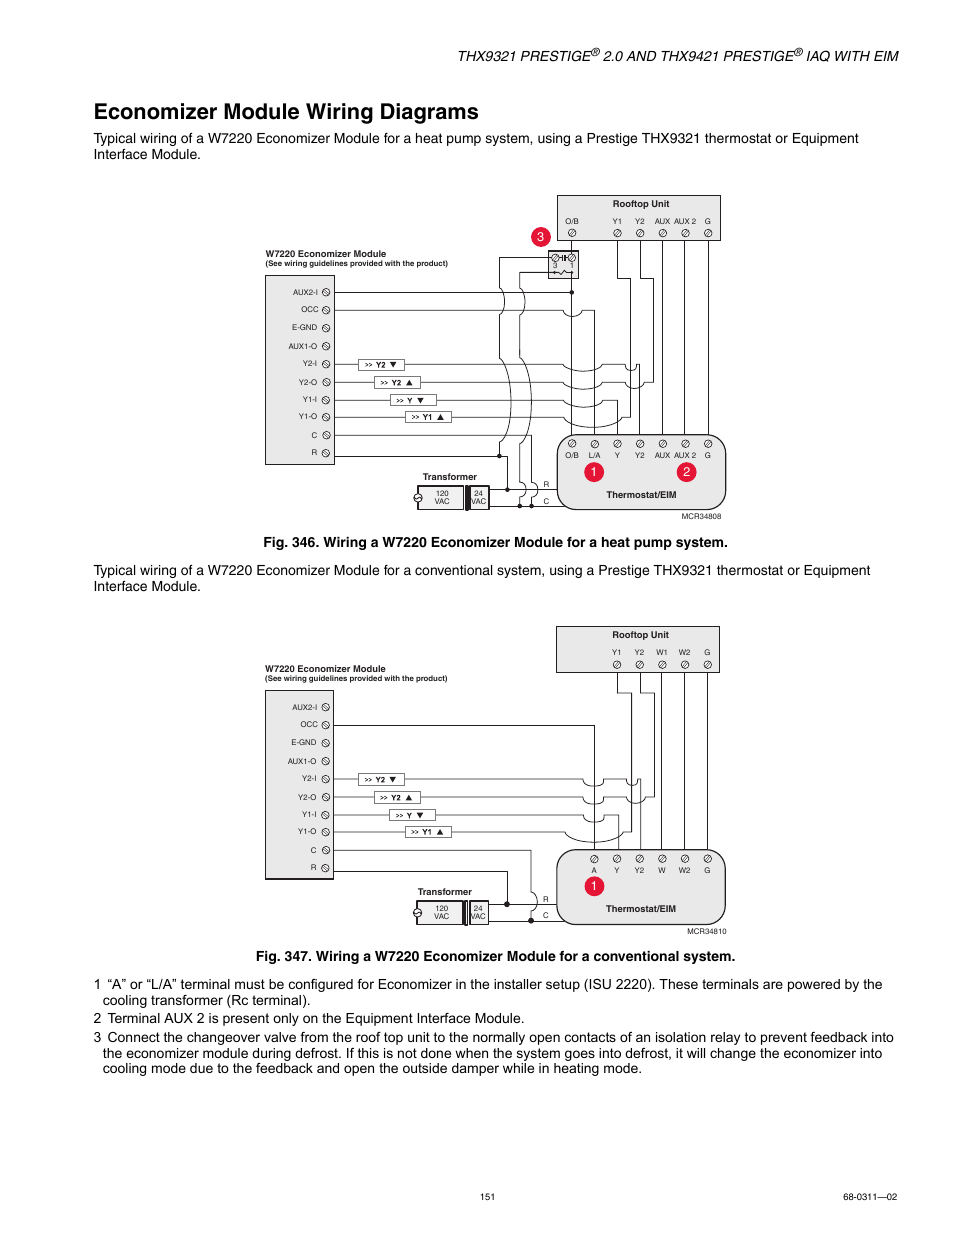 Wiring Diagram For Honeywell Prestige Wiring Diagram